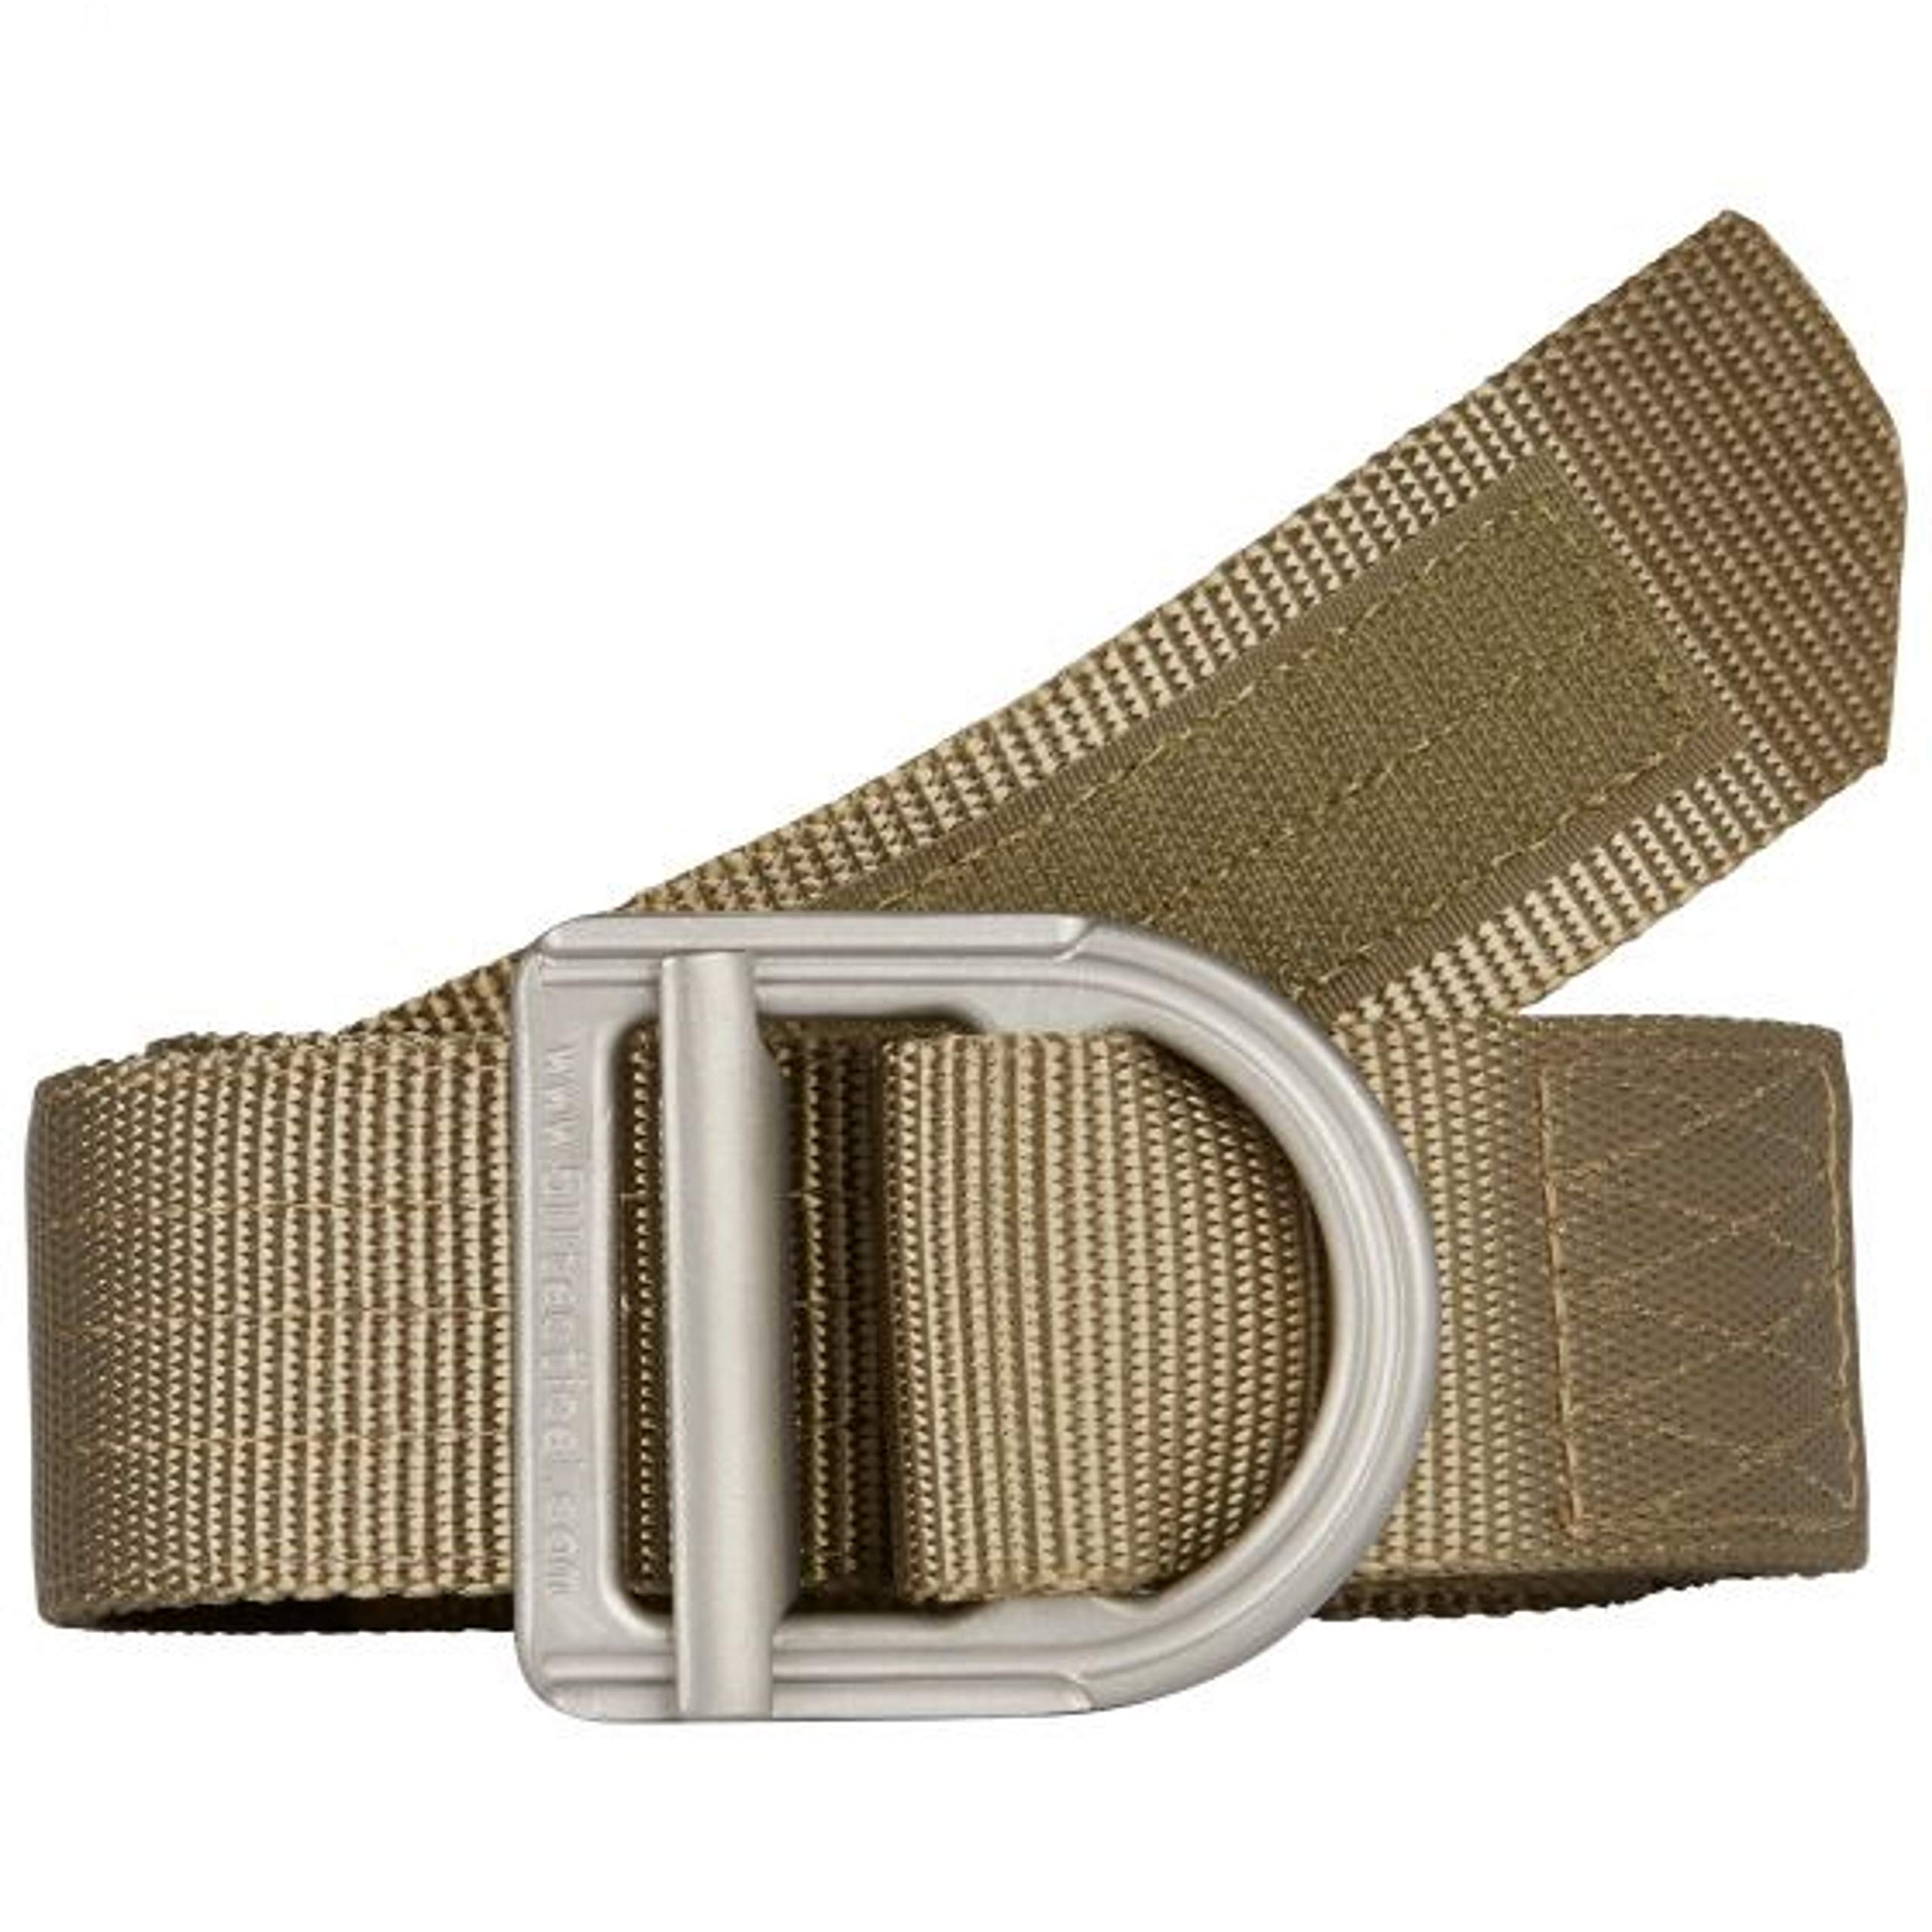 5.11  Trainer 1.5'' Tactical Belt, Heavy Duty for Military and Law Enforcement, Style 59409, Sandstone (328), L by 5.11